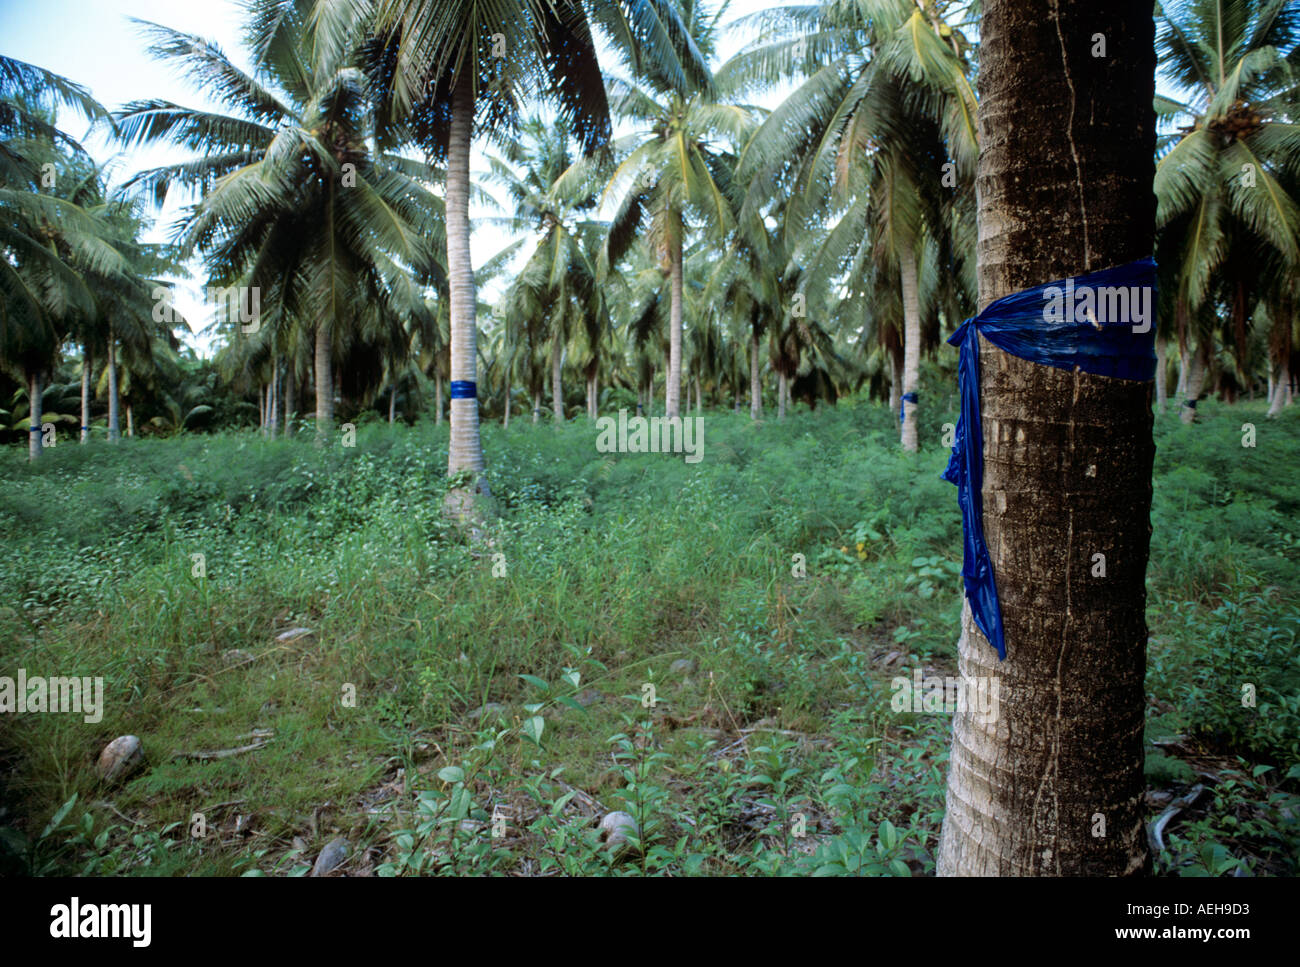 Site of nuclear testing grounds at Bikini Atoll palm trees tested for caesium 137 uptake by Matt Harris - Stock Image